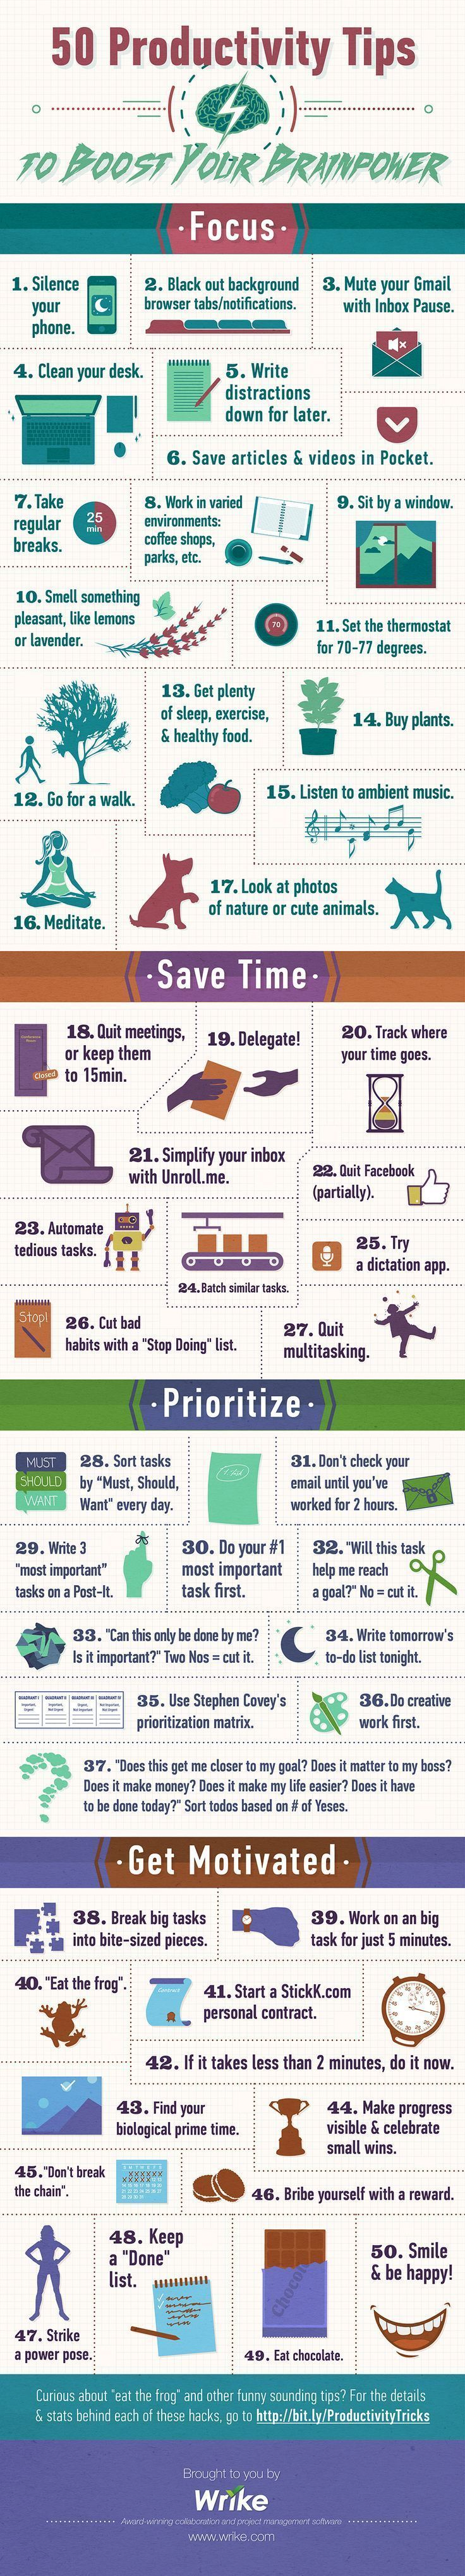 50 Productivity Tips - getting things done